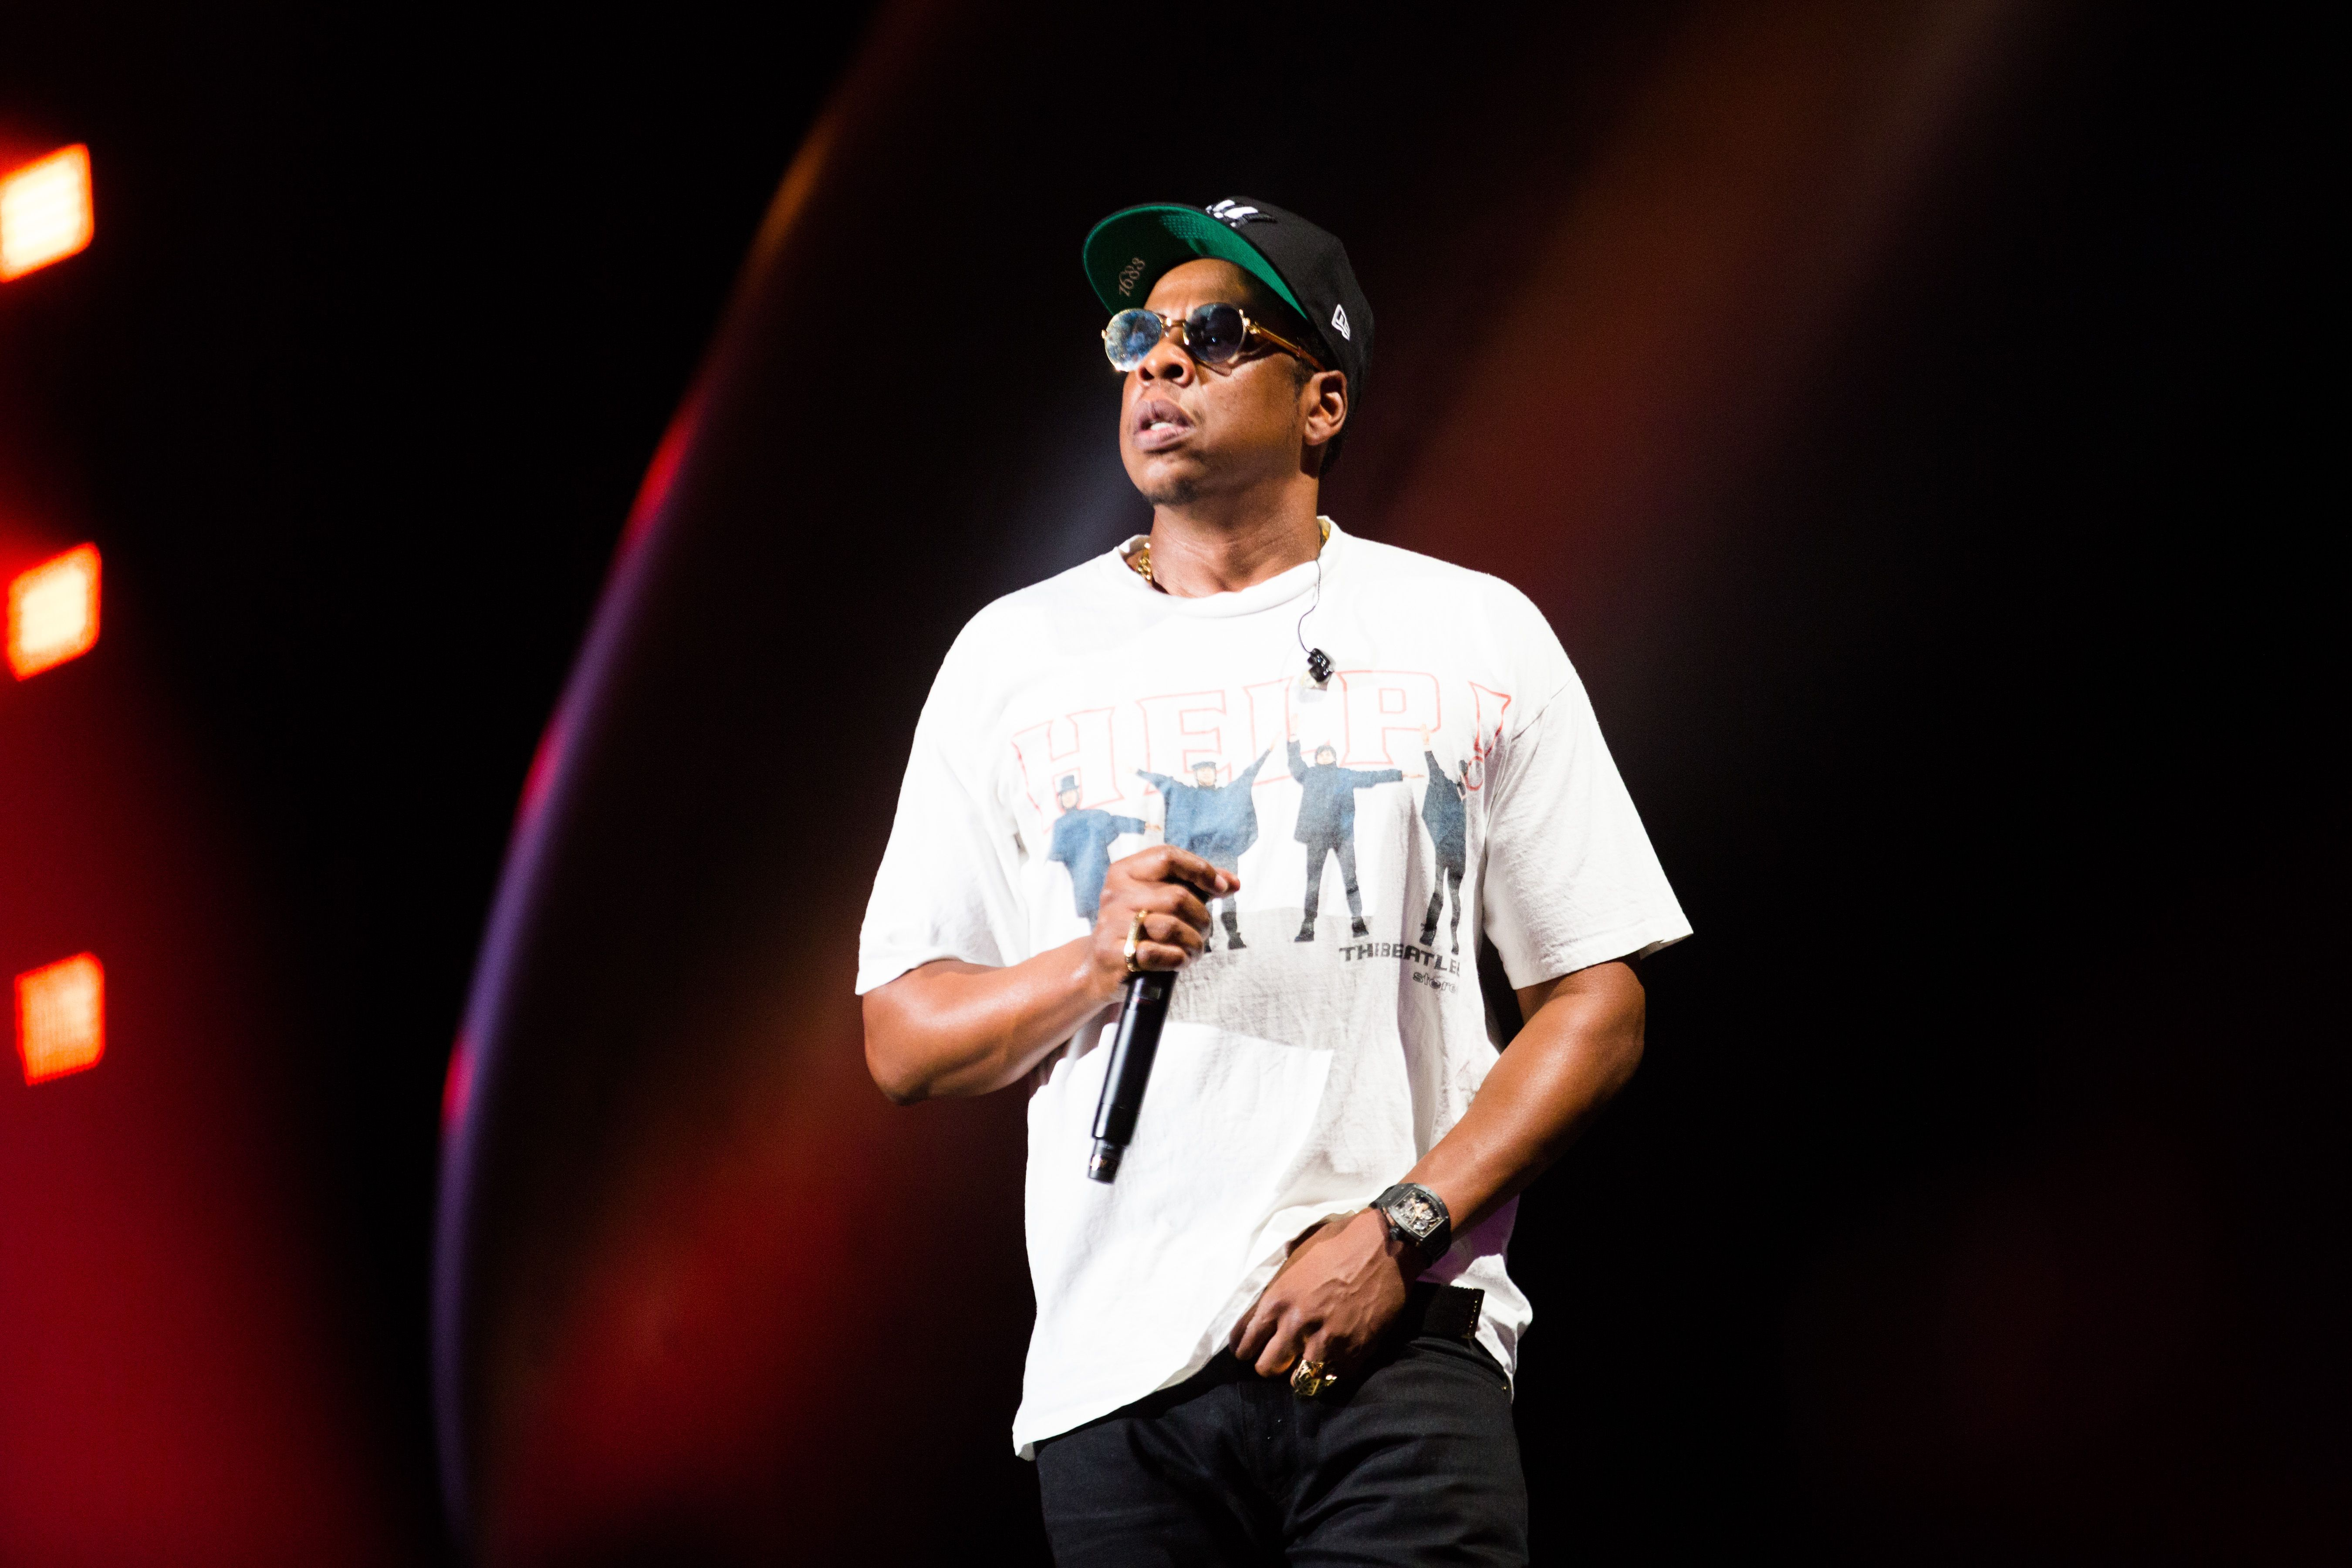 bd26857a19c6 Jay-Z has shot up to Number Five on Forbes  annual ranking of celebrity net  worth